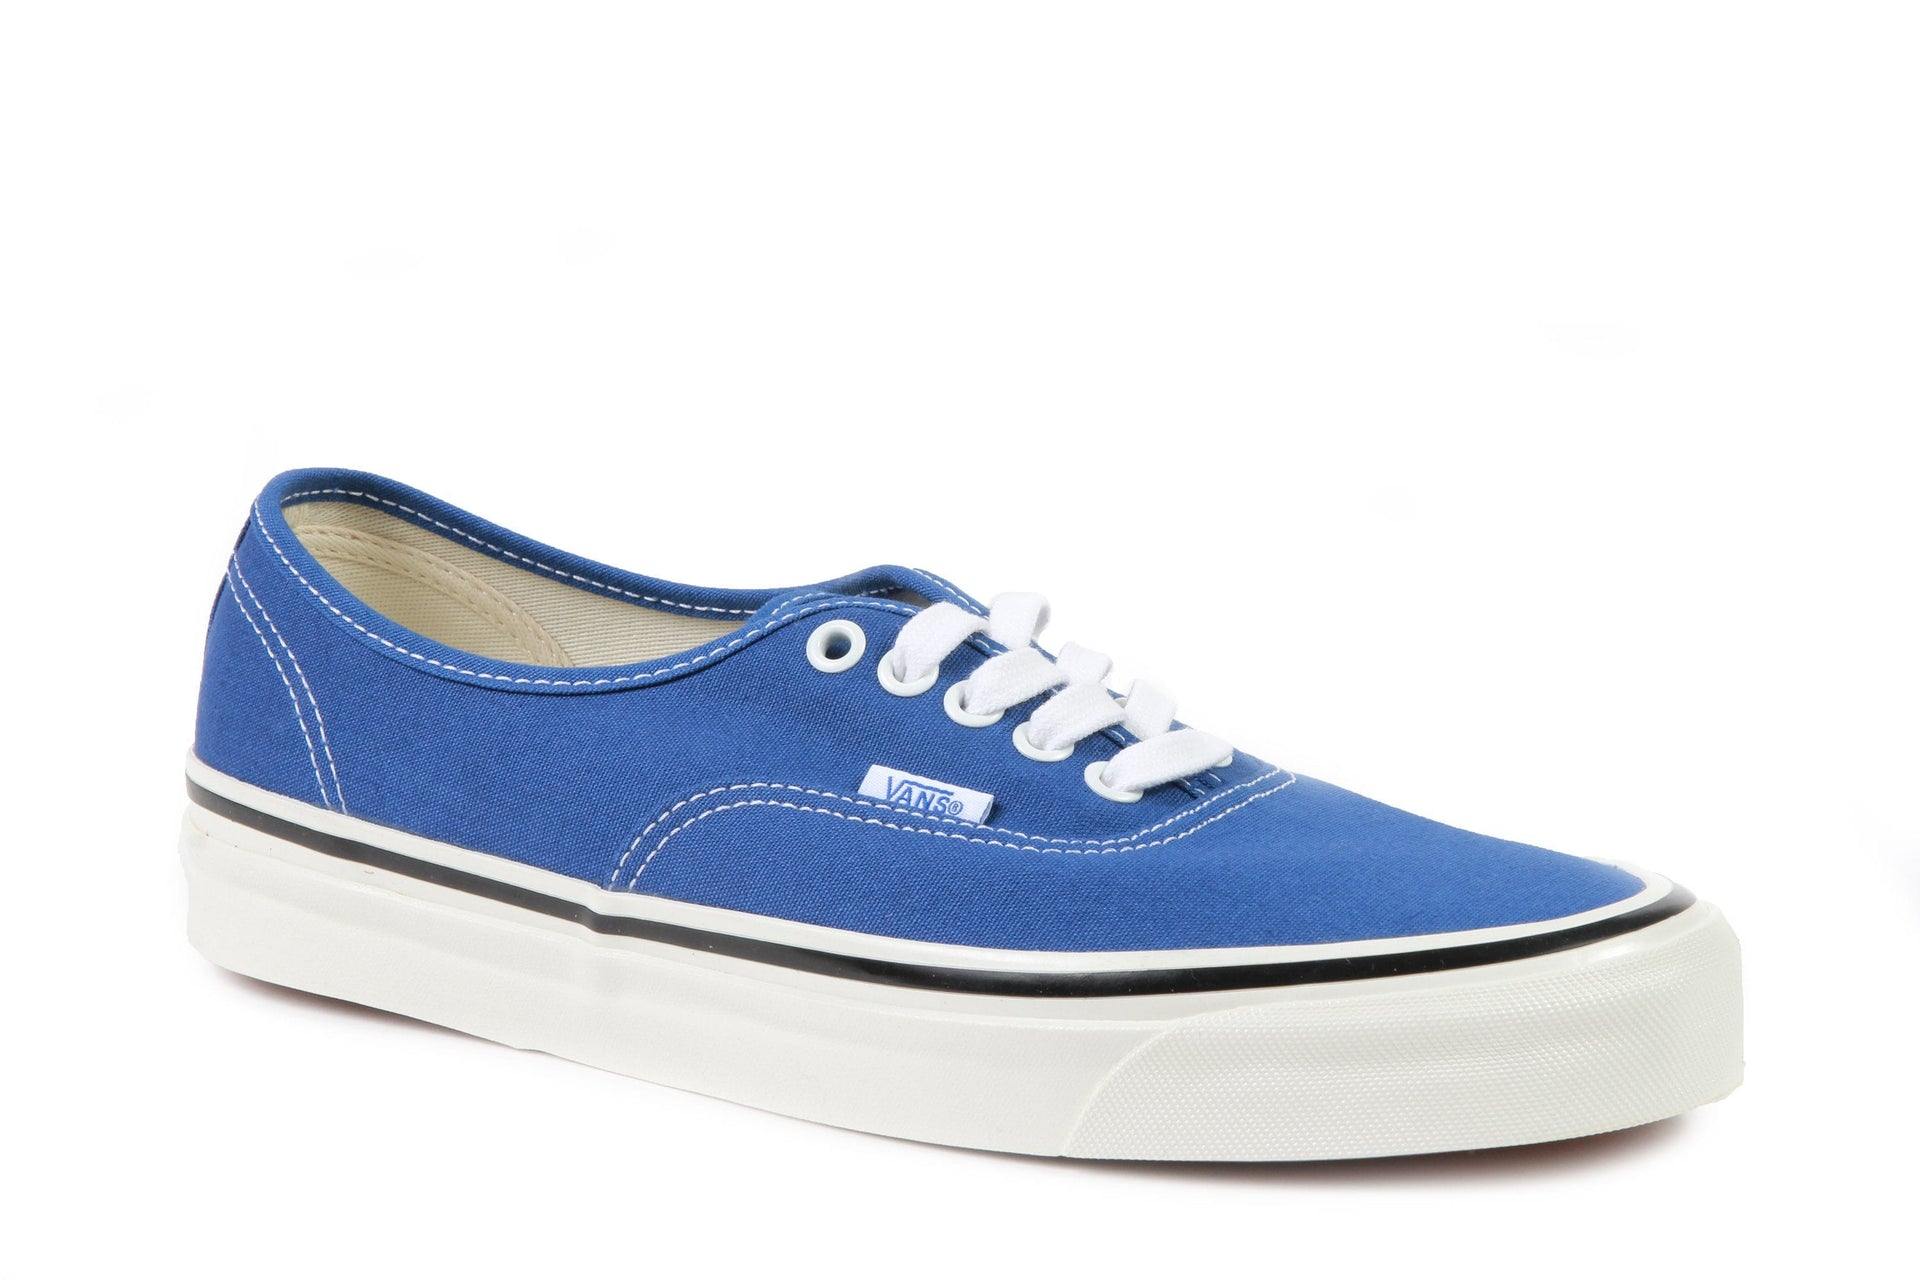 AUTHENTIC 44 DX (ANAHEIM FACTORY) - VN0A38ENQA5 MENS FOOTWEAR VANS